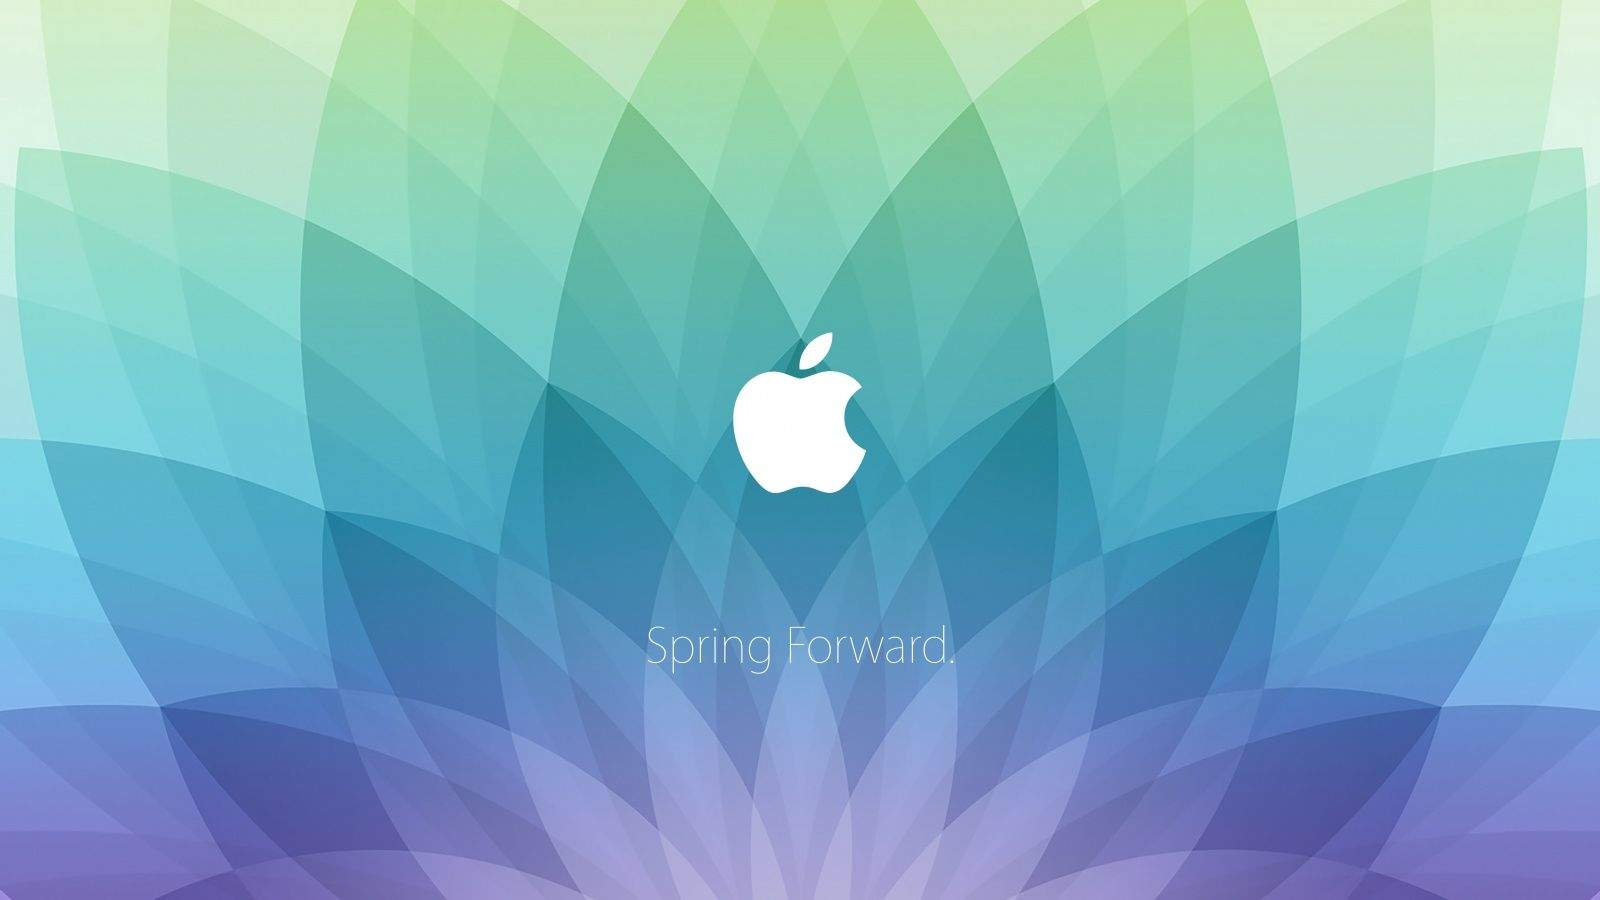 Apple Watch event wallpapers put Spring Forward invite on your Mac 1600x900